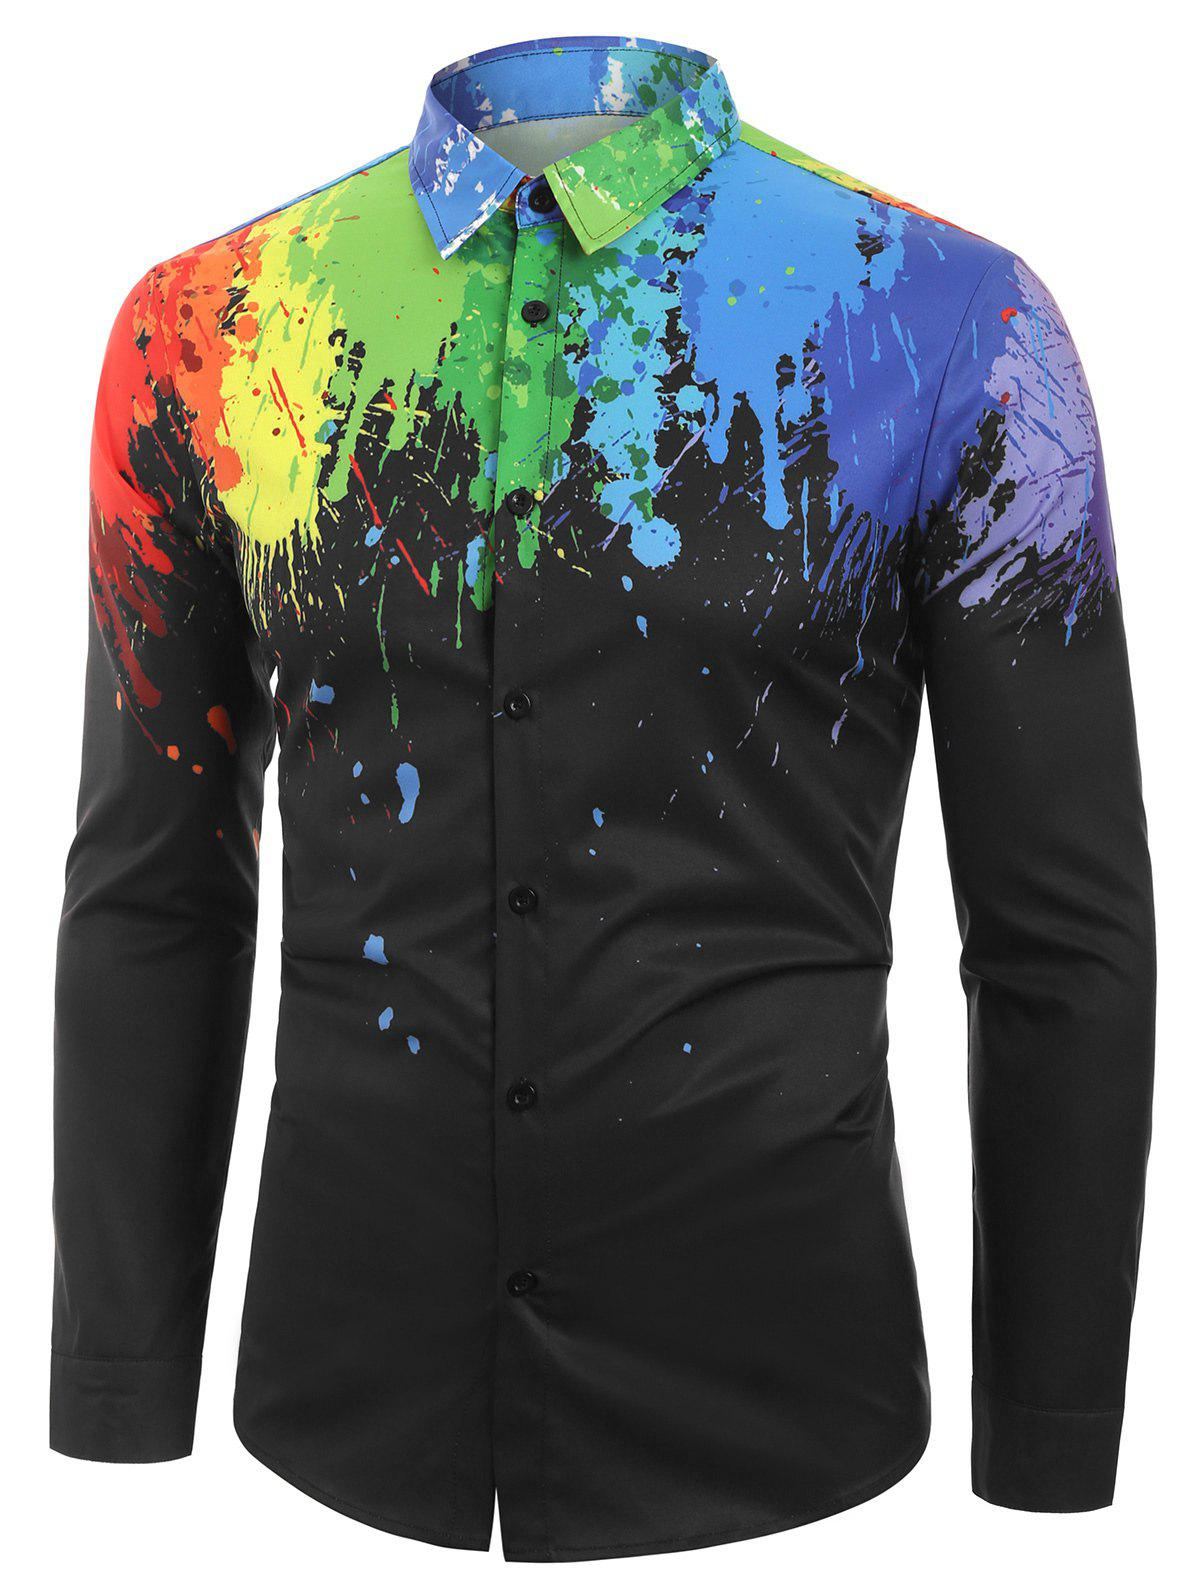 Long Sleeves Splatter Painting Print Button Shirt - BLACK XL